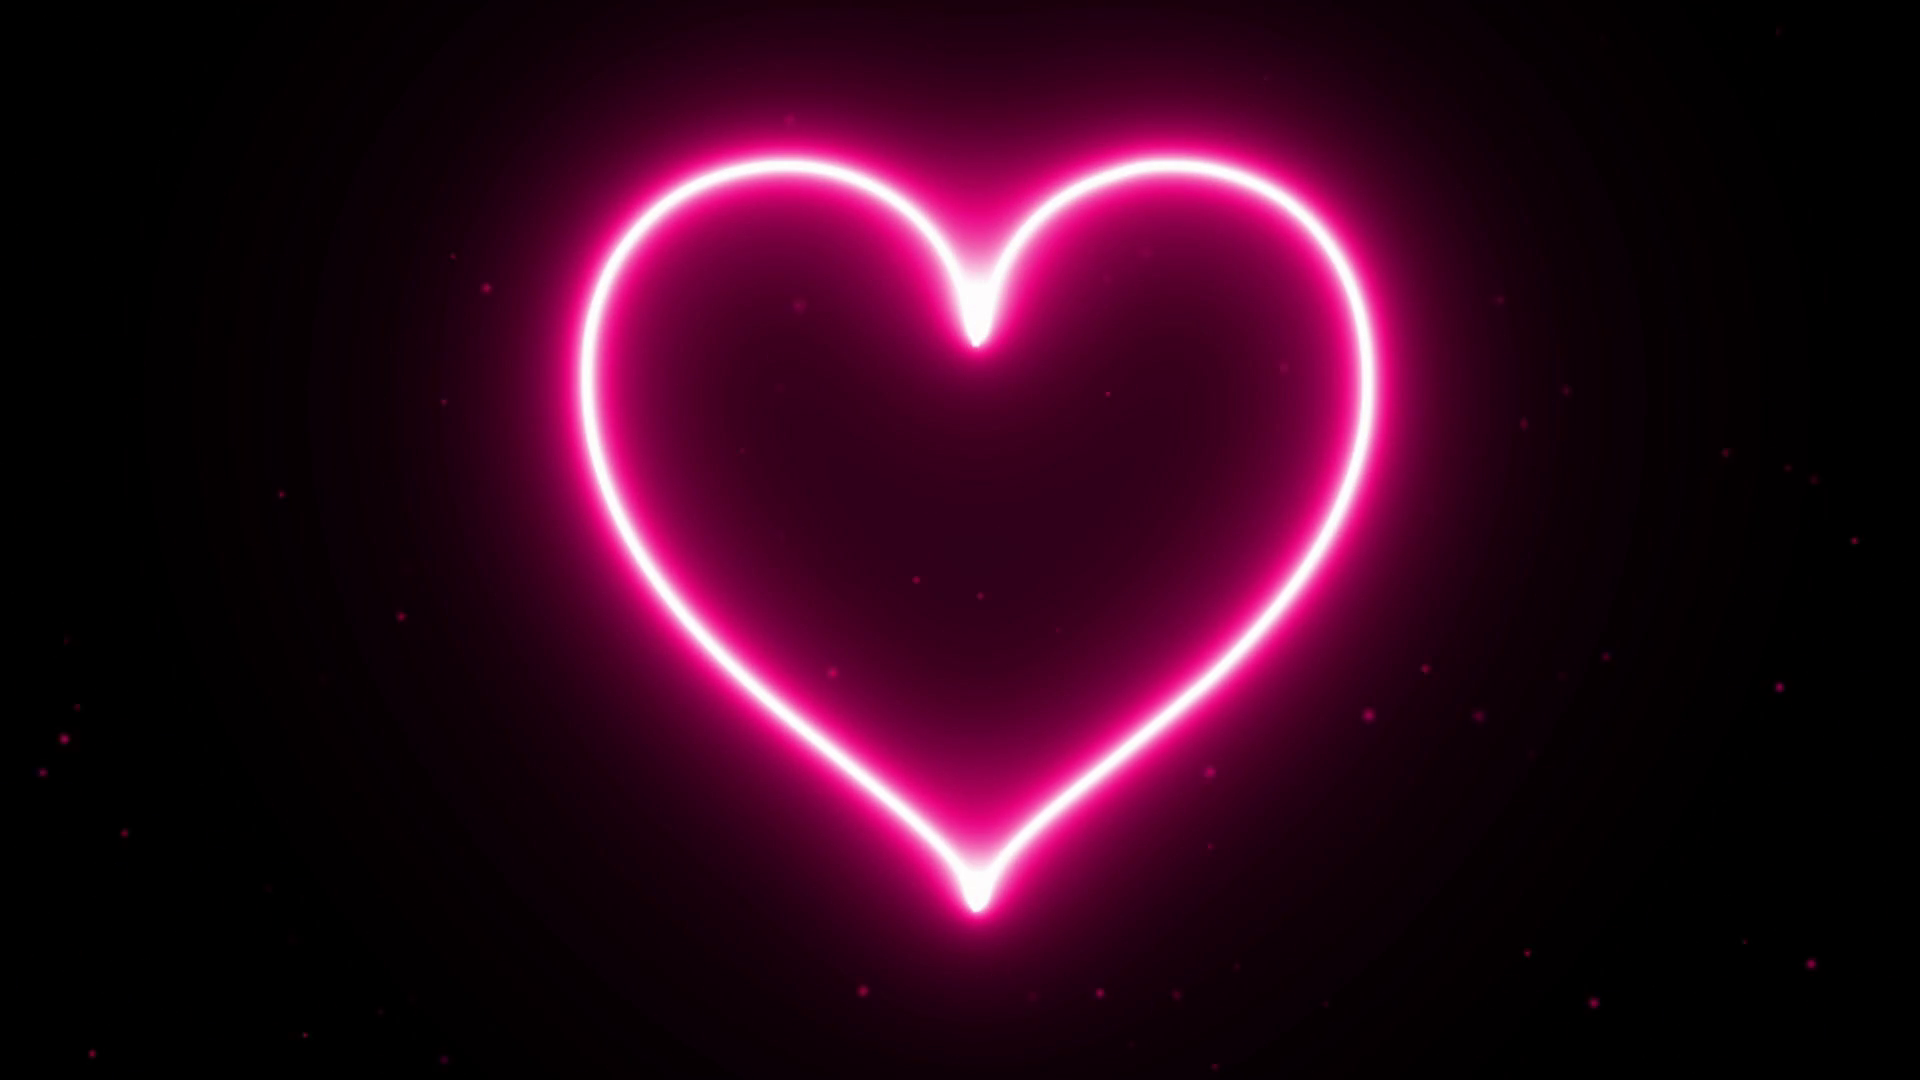 videoblocks-4k-animation-appearance-pink-heart-energy-shape-flame-or-burn-on-the-dark-background-and-fire-spark-motion-graphic-and-animation-background_r05s7azdg_thumbnail-full08.png